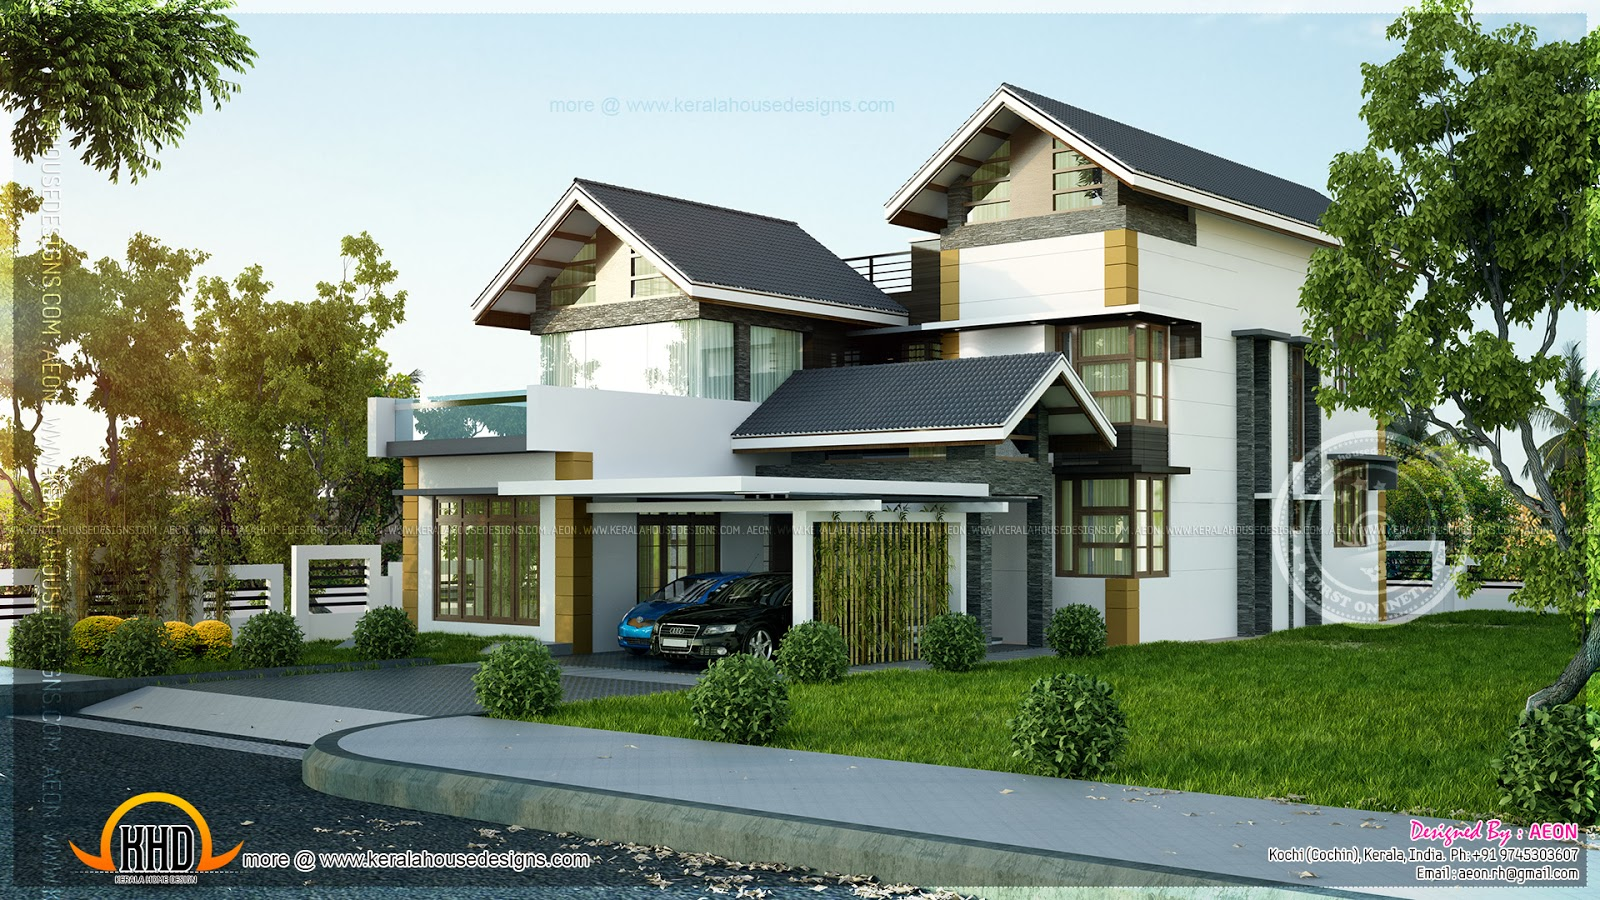 House plans and design modern house plans sloping land for Sloped lot home designs